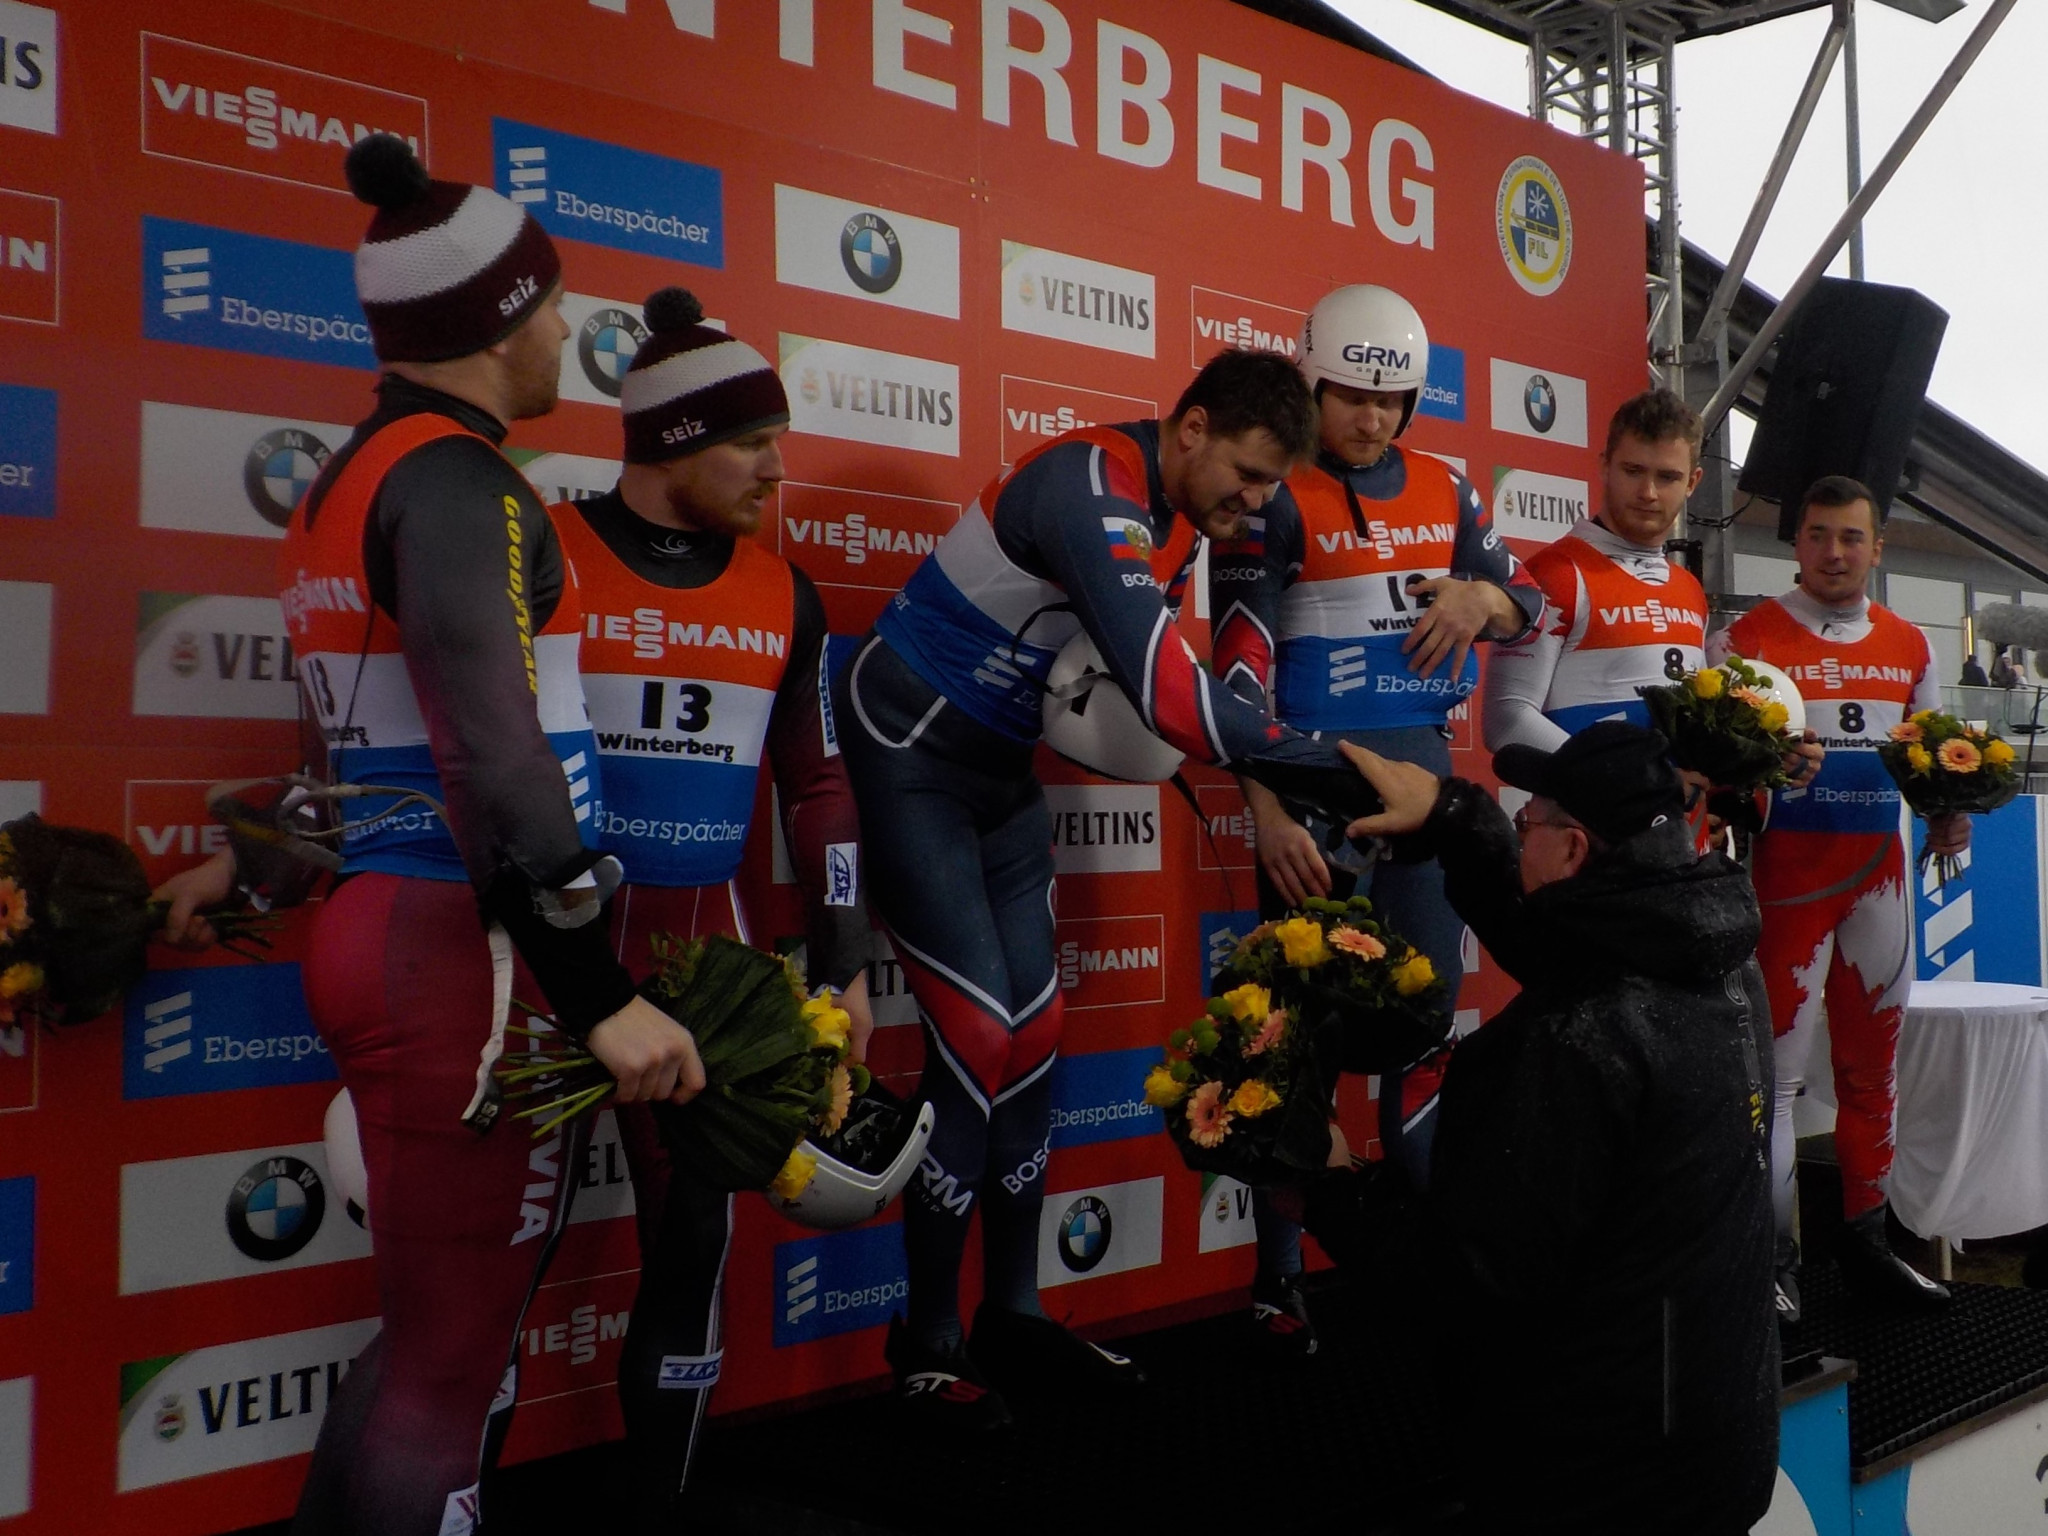 Russia win two golds at Luge World Cup after Germans skip own event due to safety fears